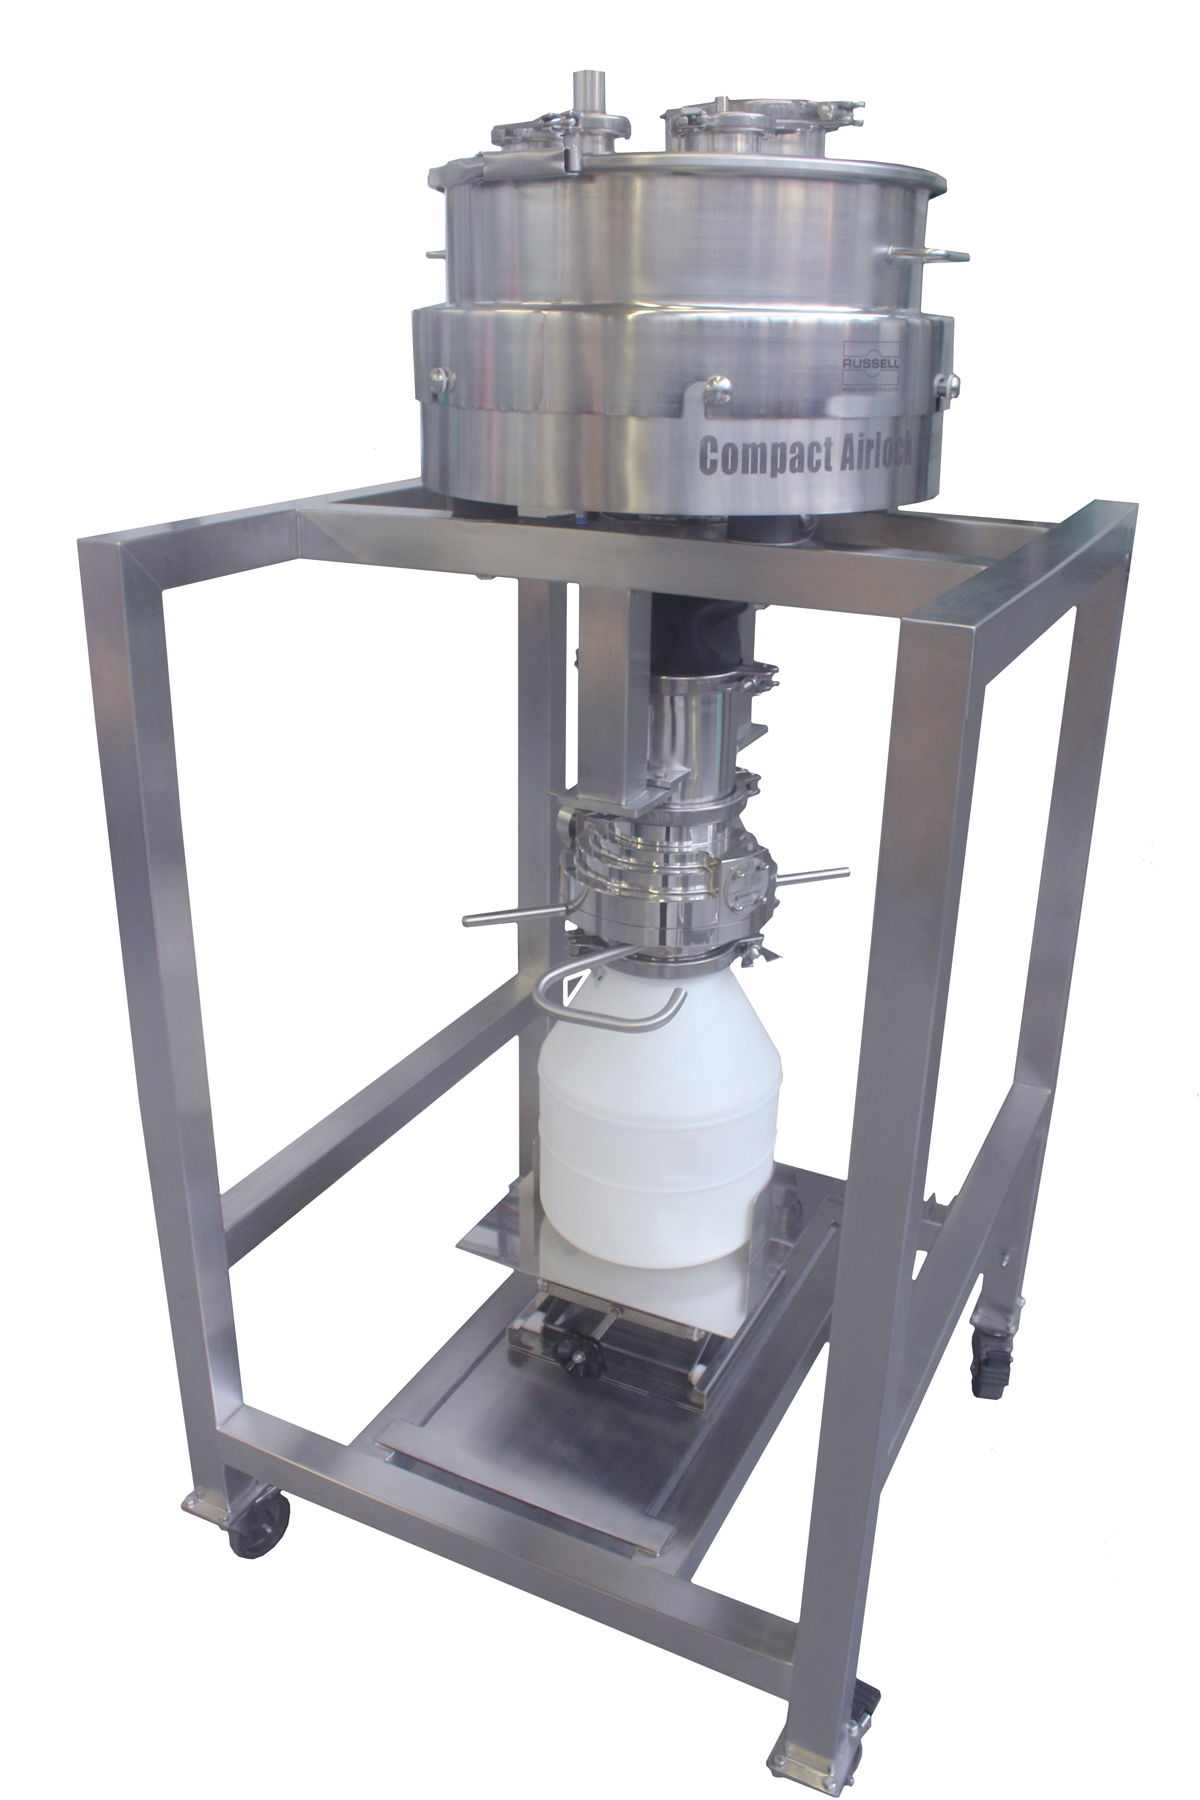 Aseptic sieve guarantees containment during screening and powder transfer